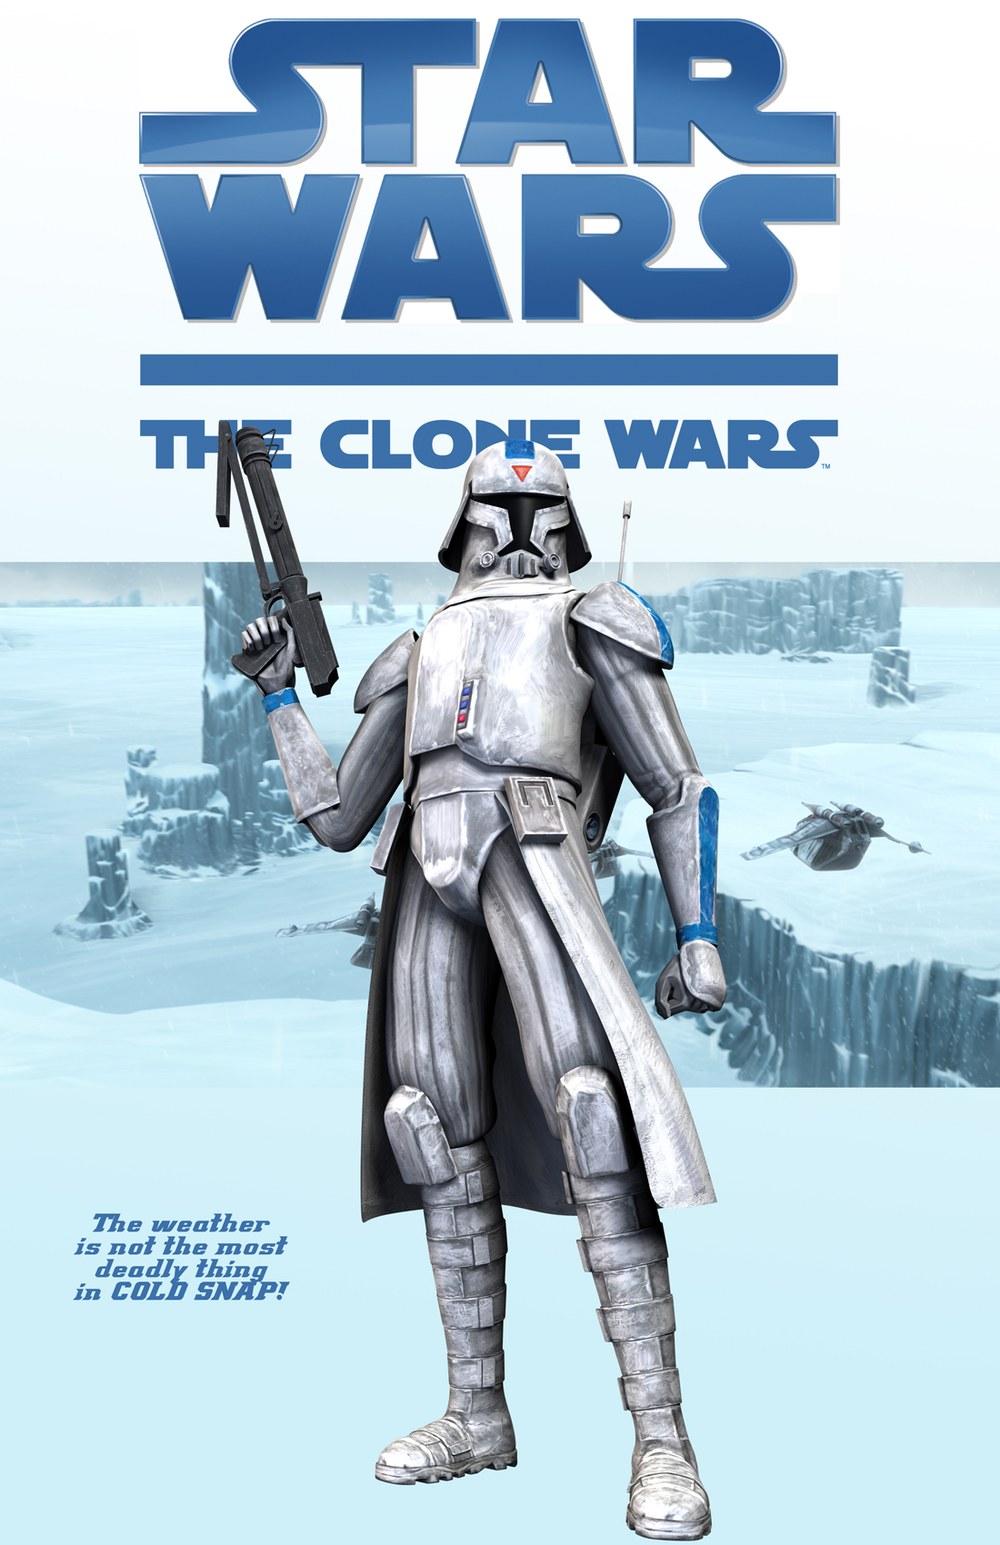 Star Wars The Clone Wars: Cold Snap